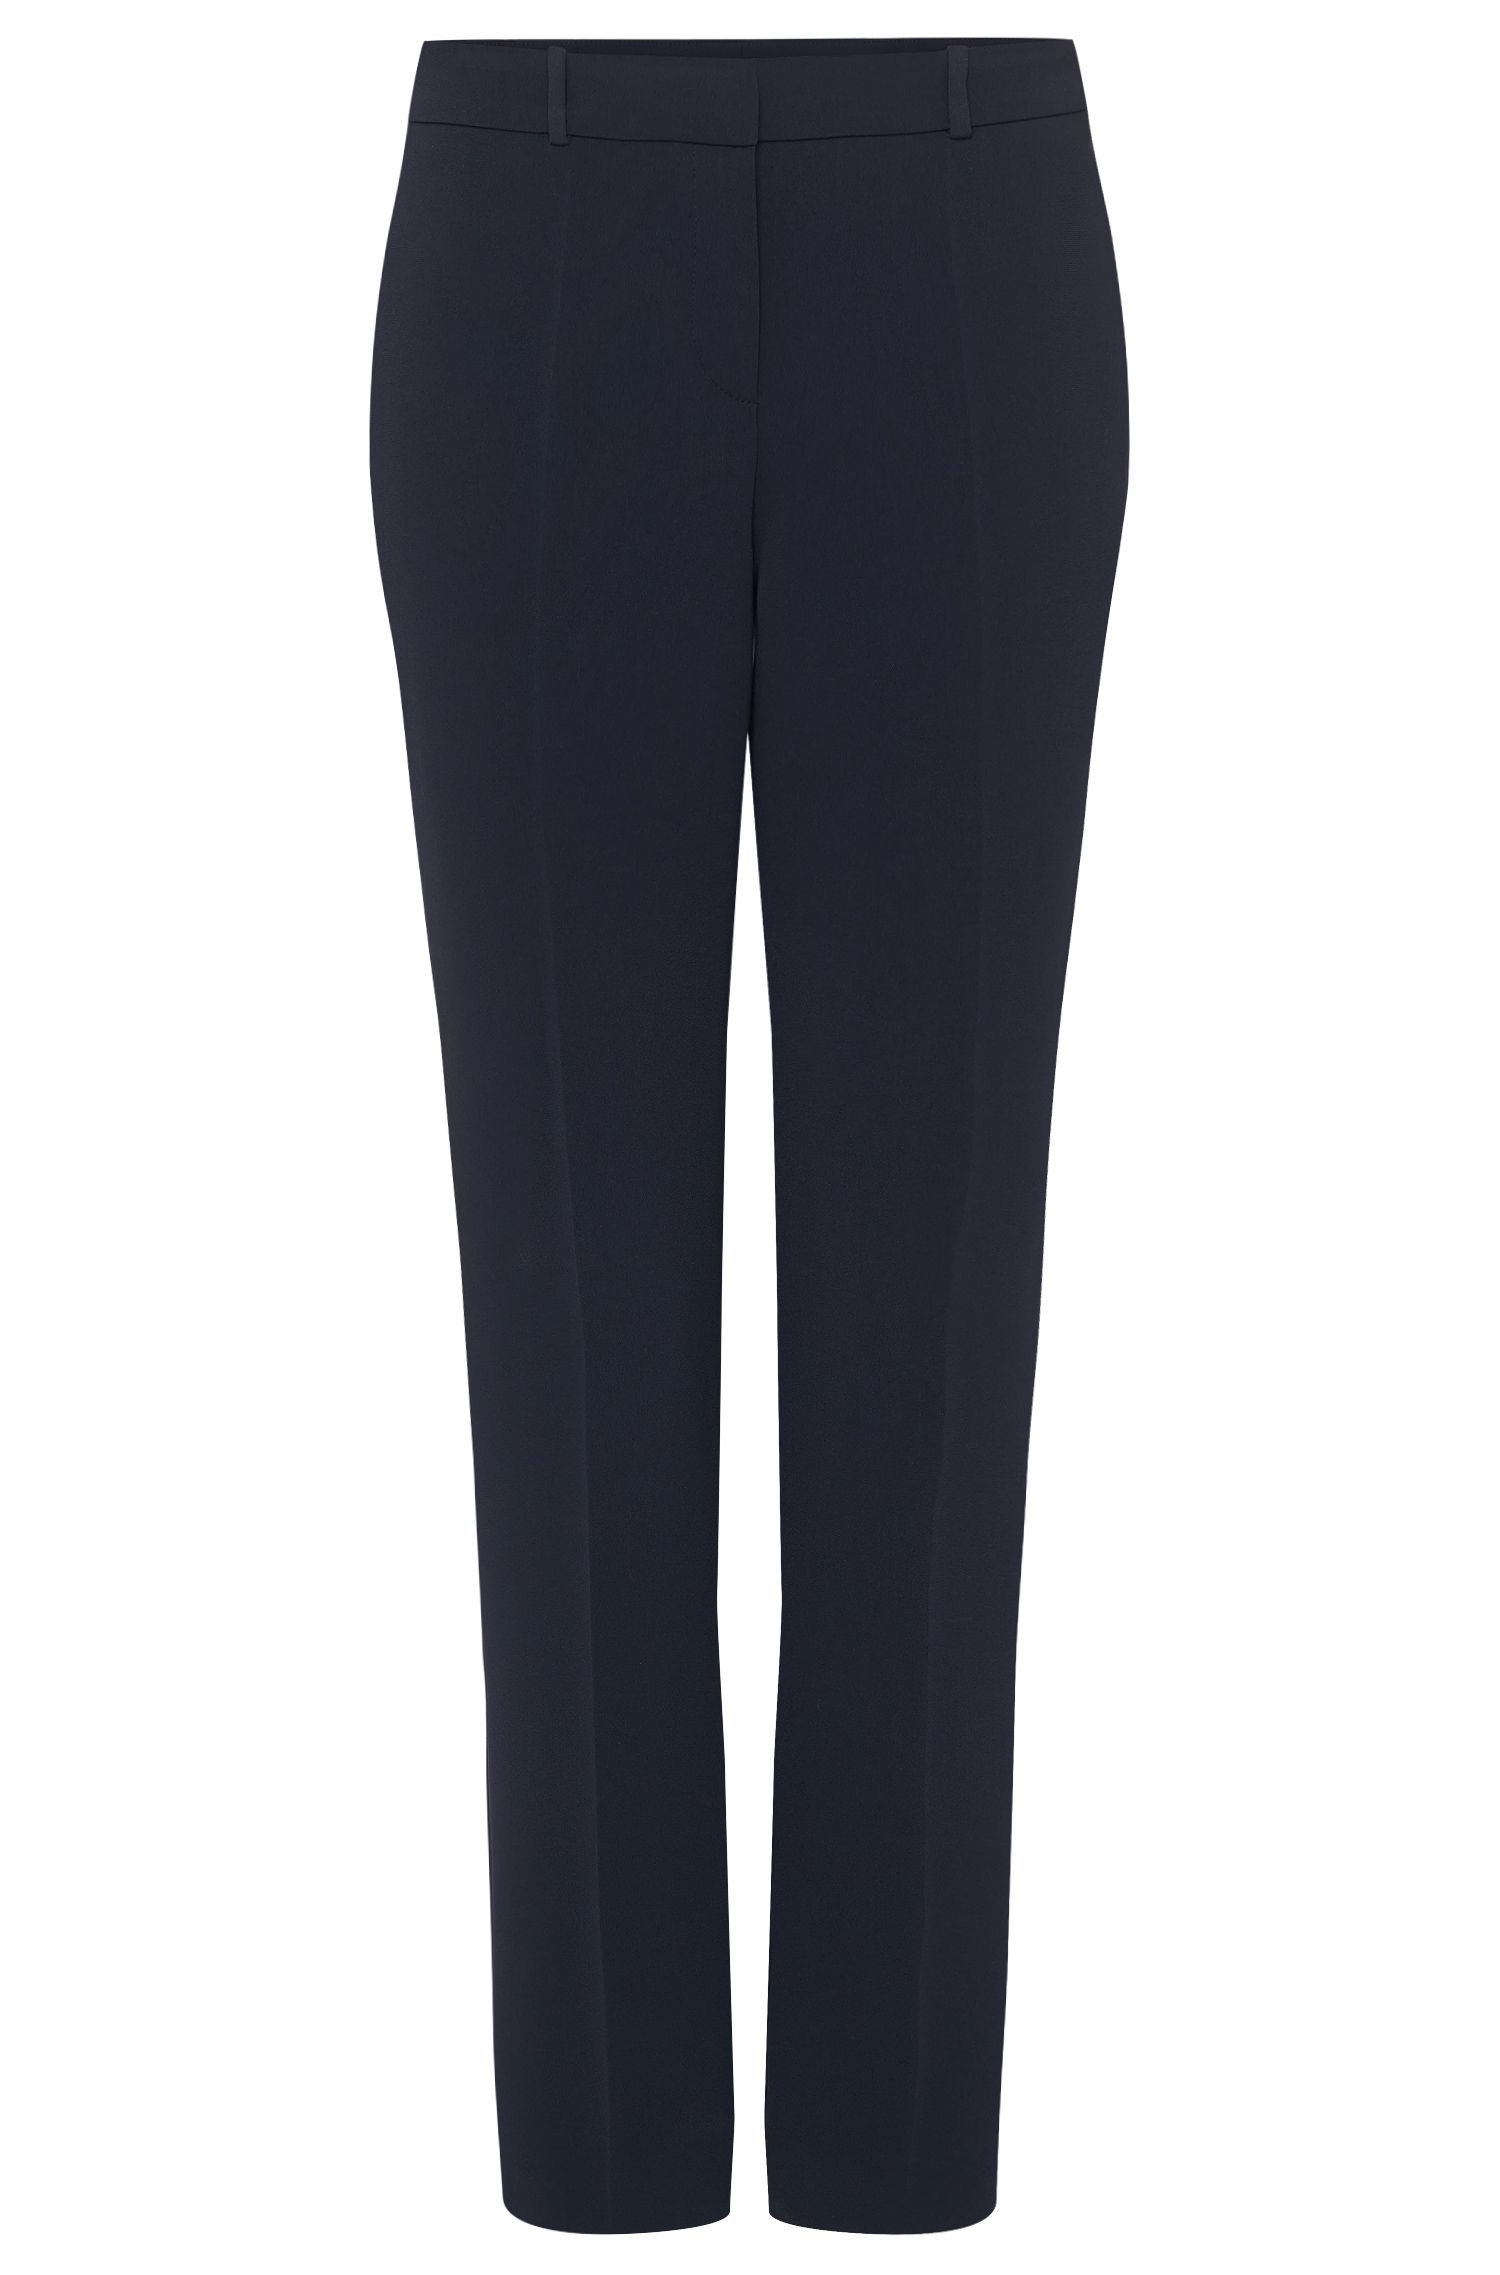 Pantalon Relaxed Fit : « Tiluna1 »